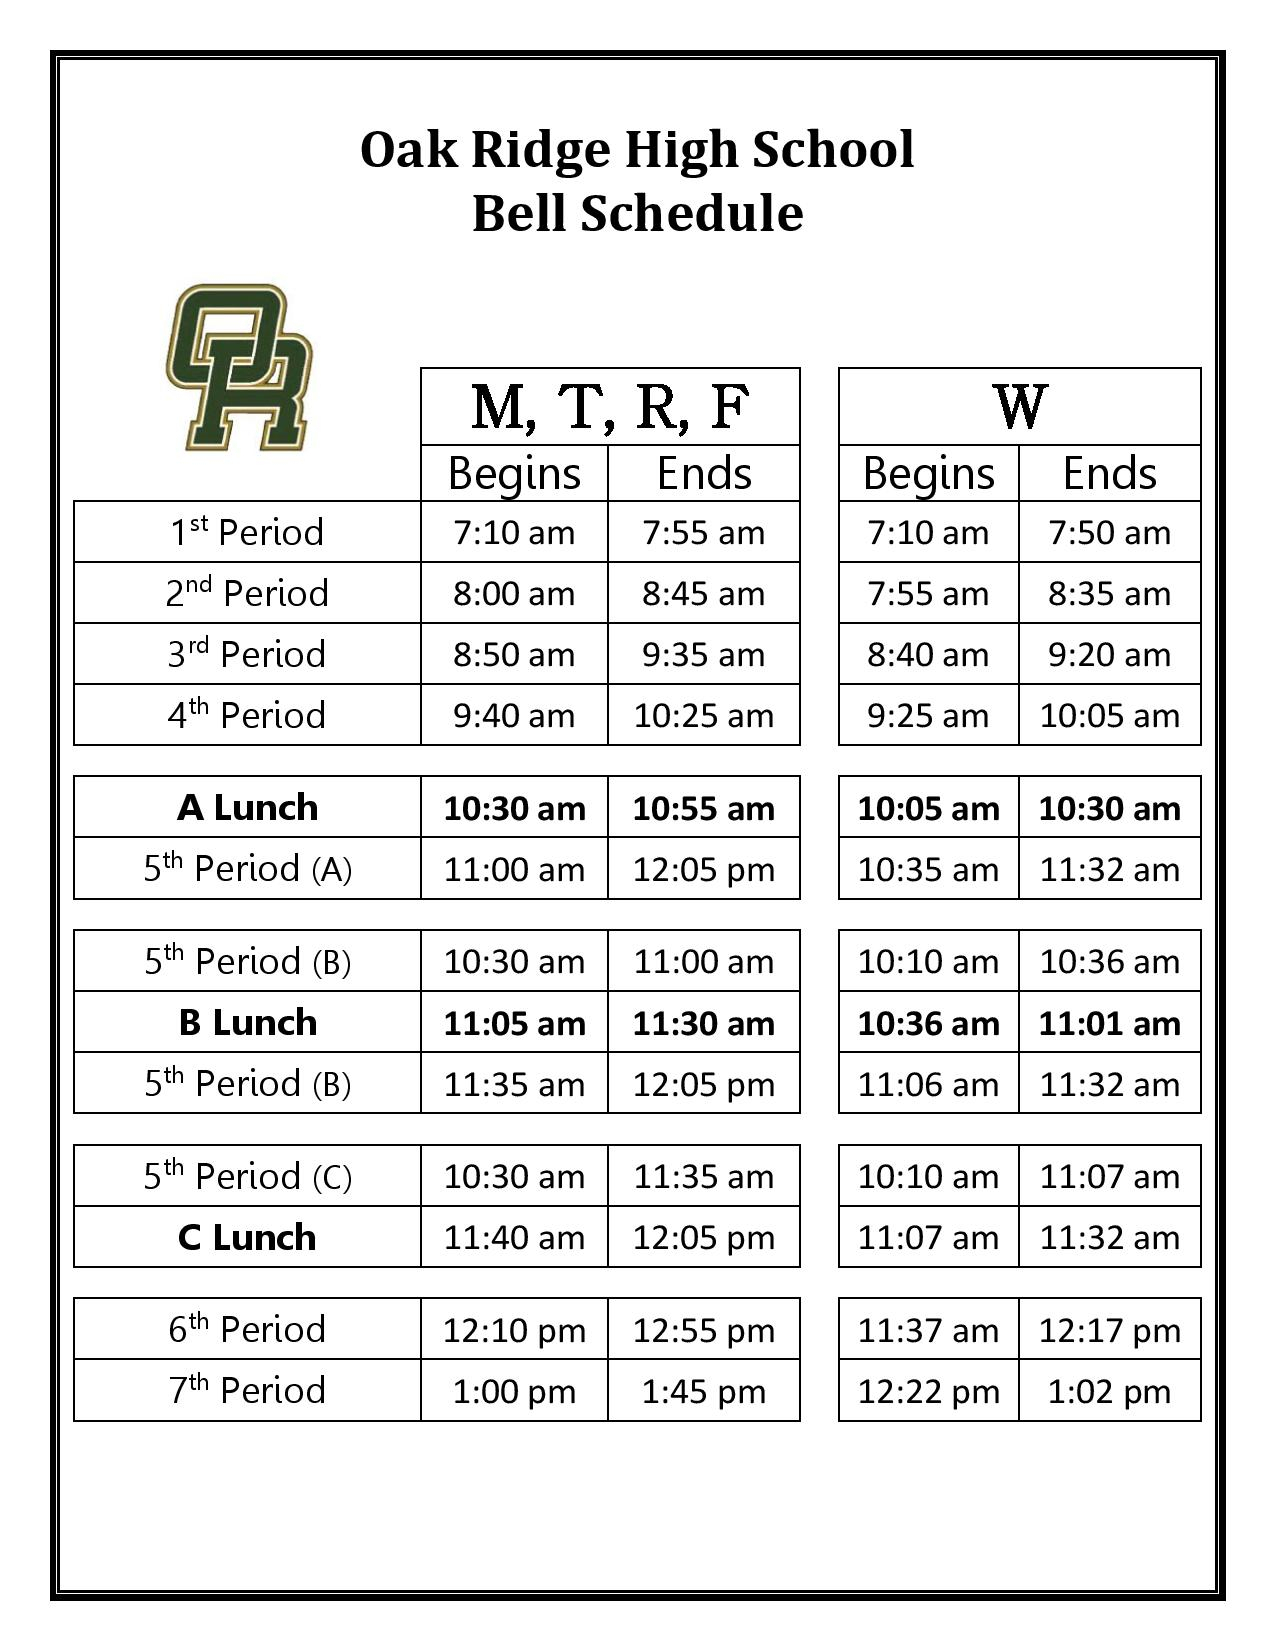 Bell Schedule  Oak Ridge Hs regarding Haines City High School Bell Schedule